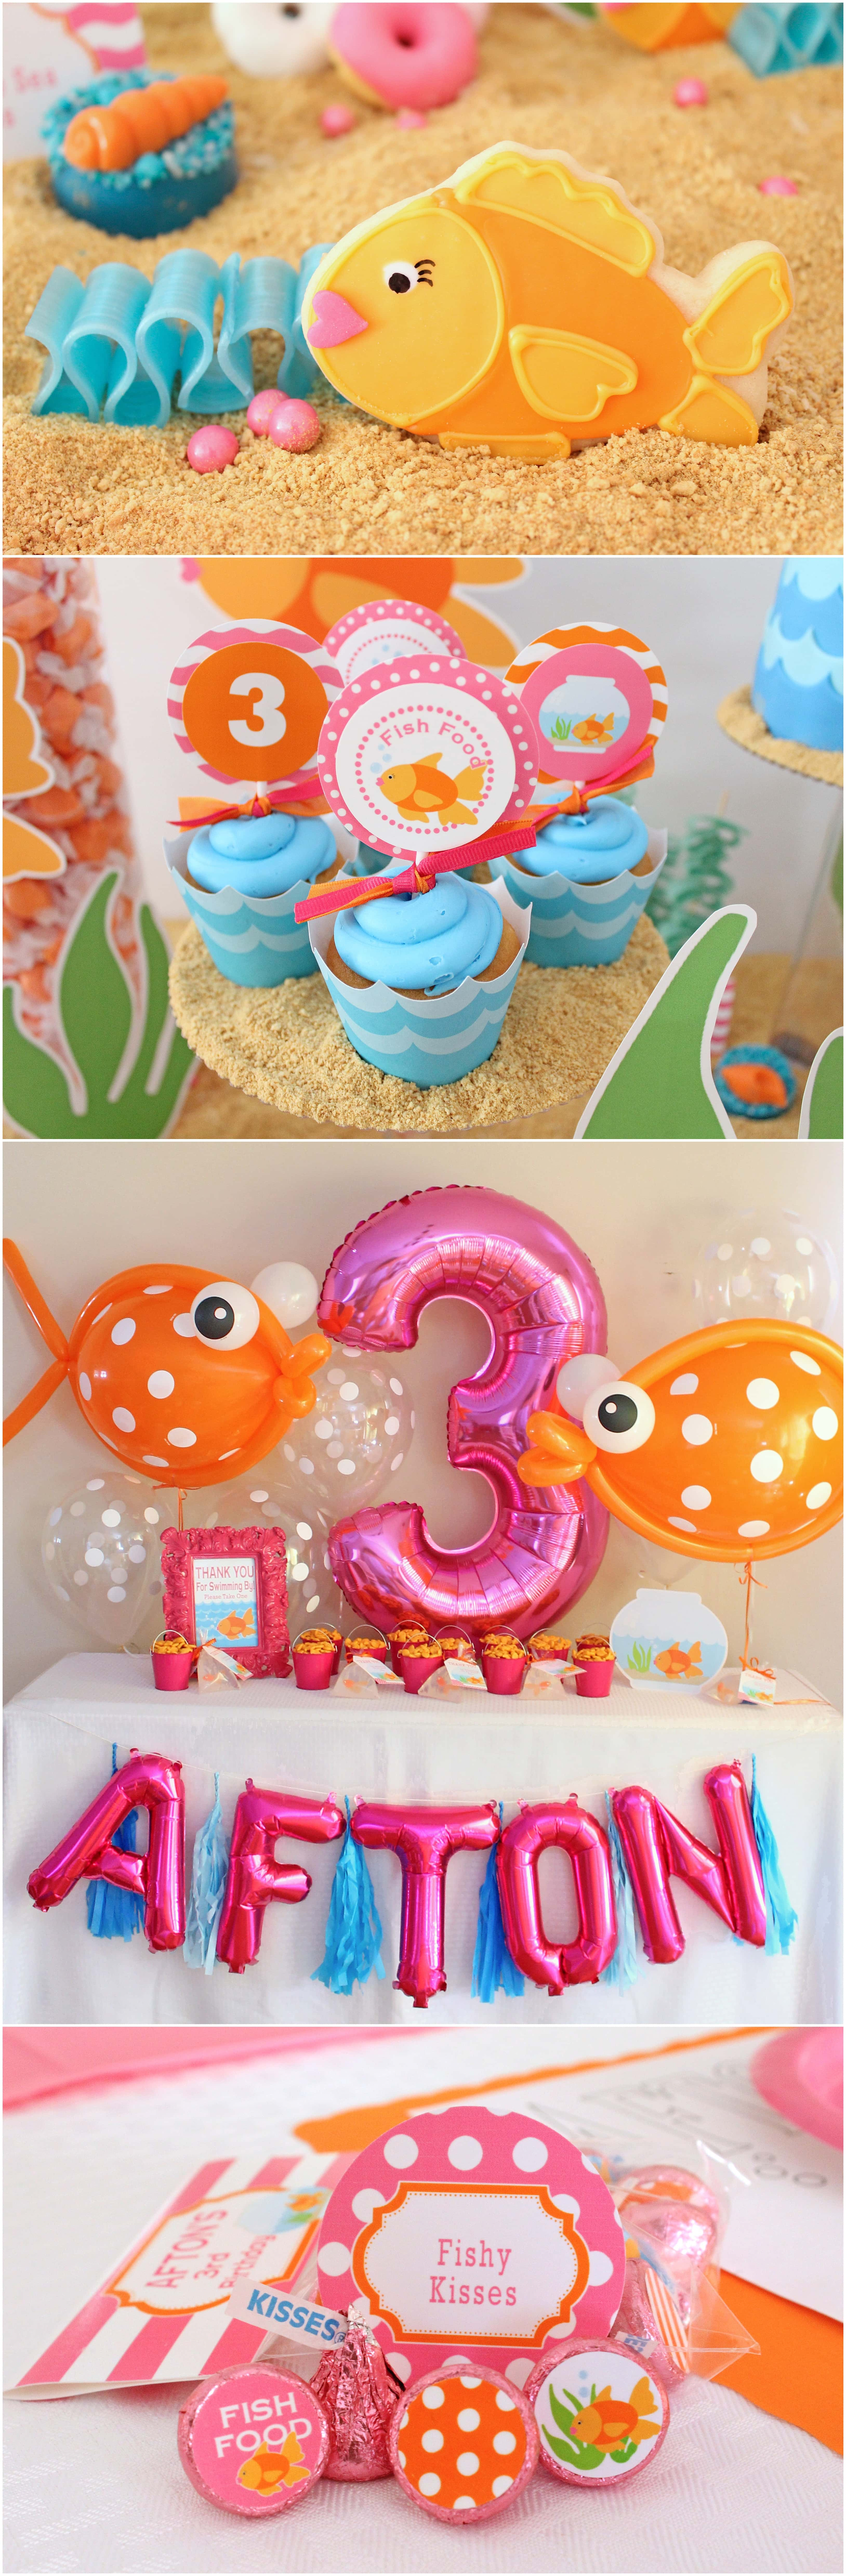 Cute Under the Sea Party!